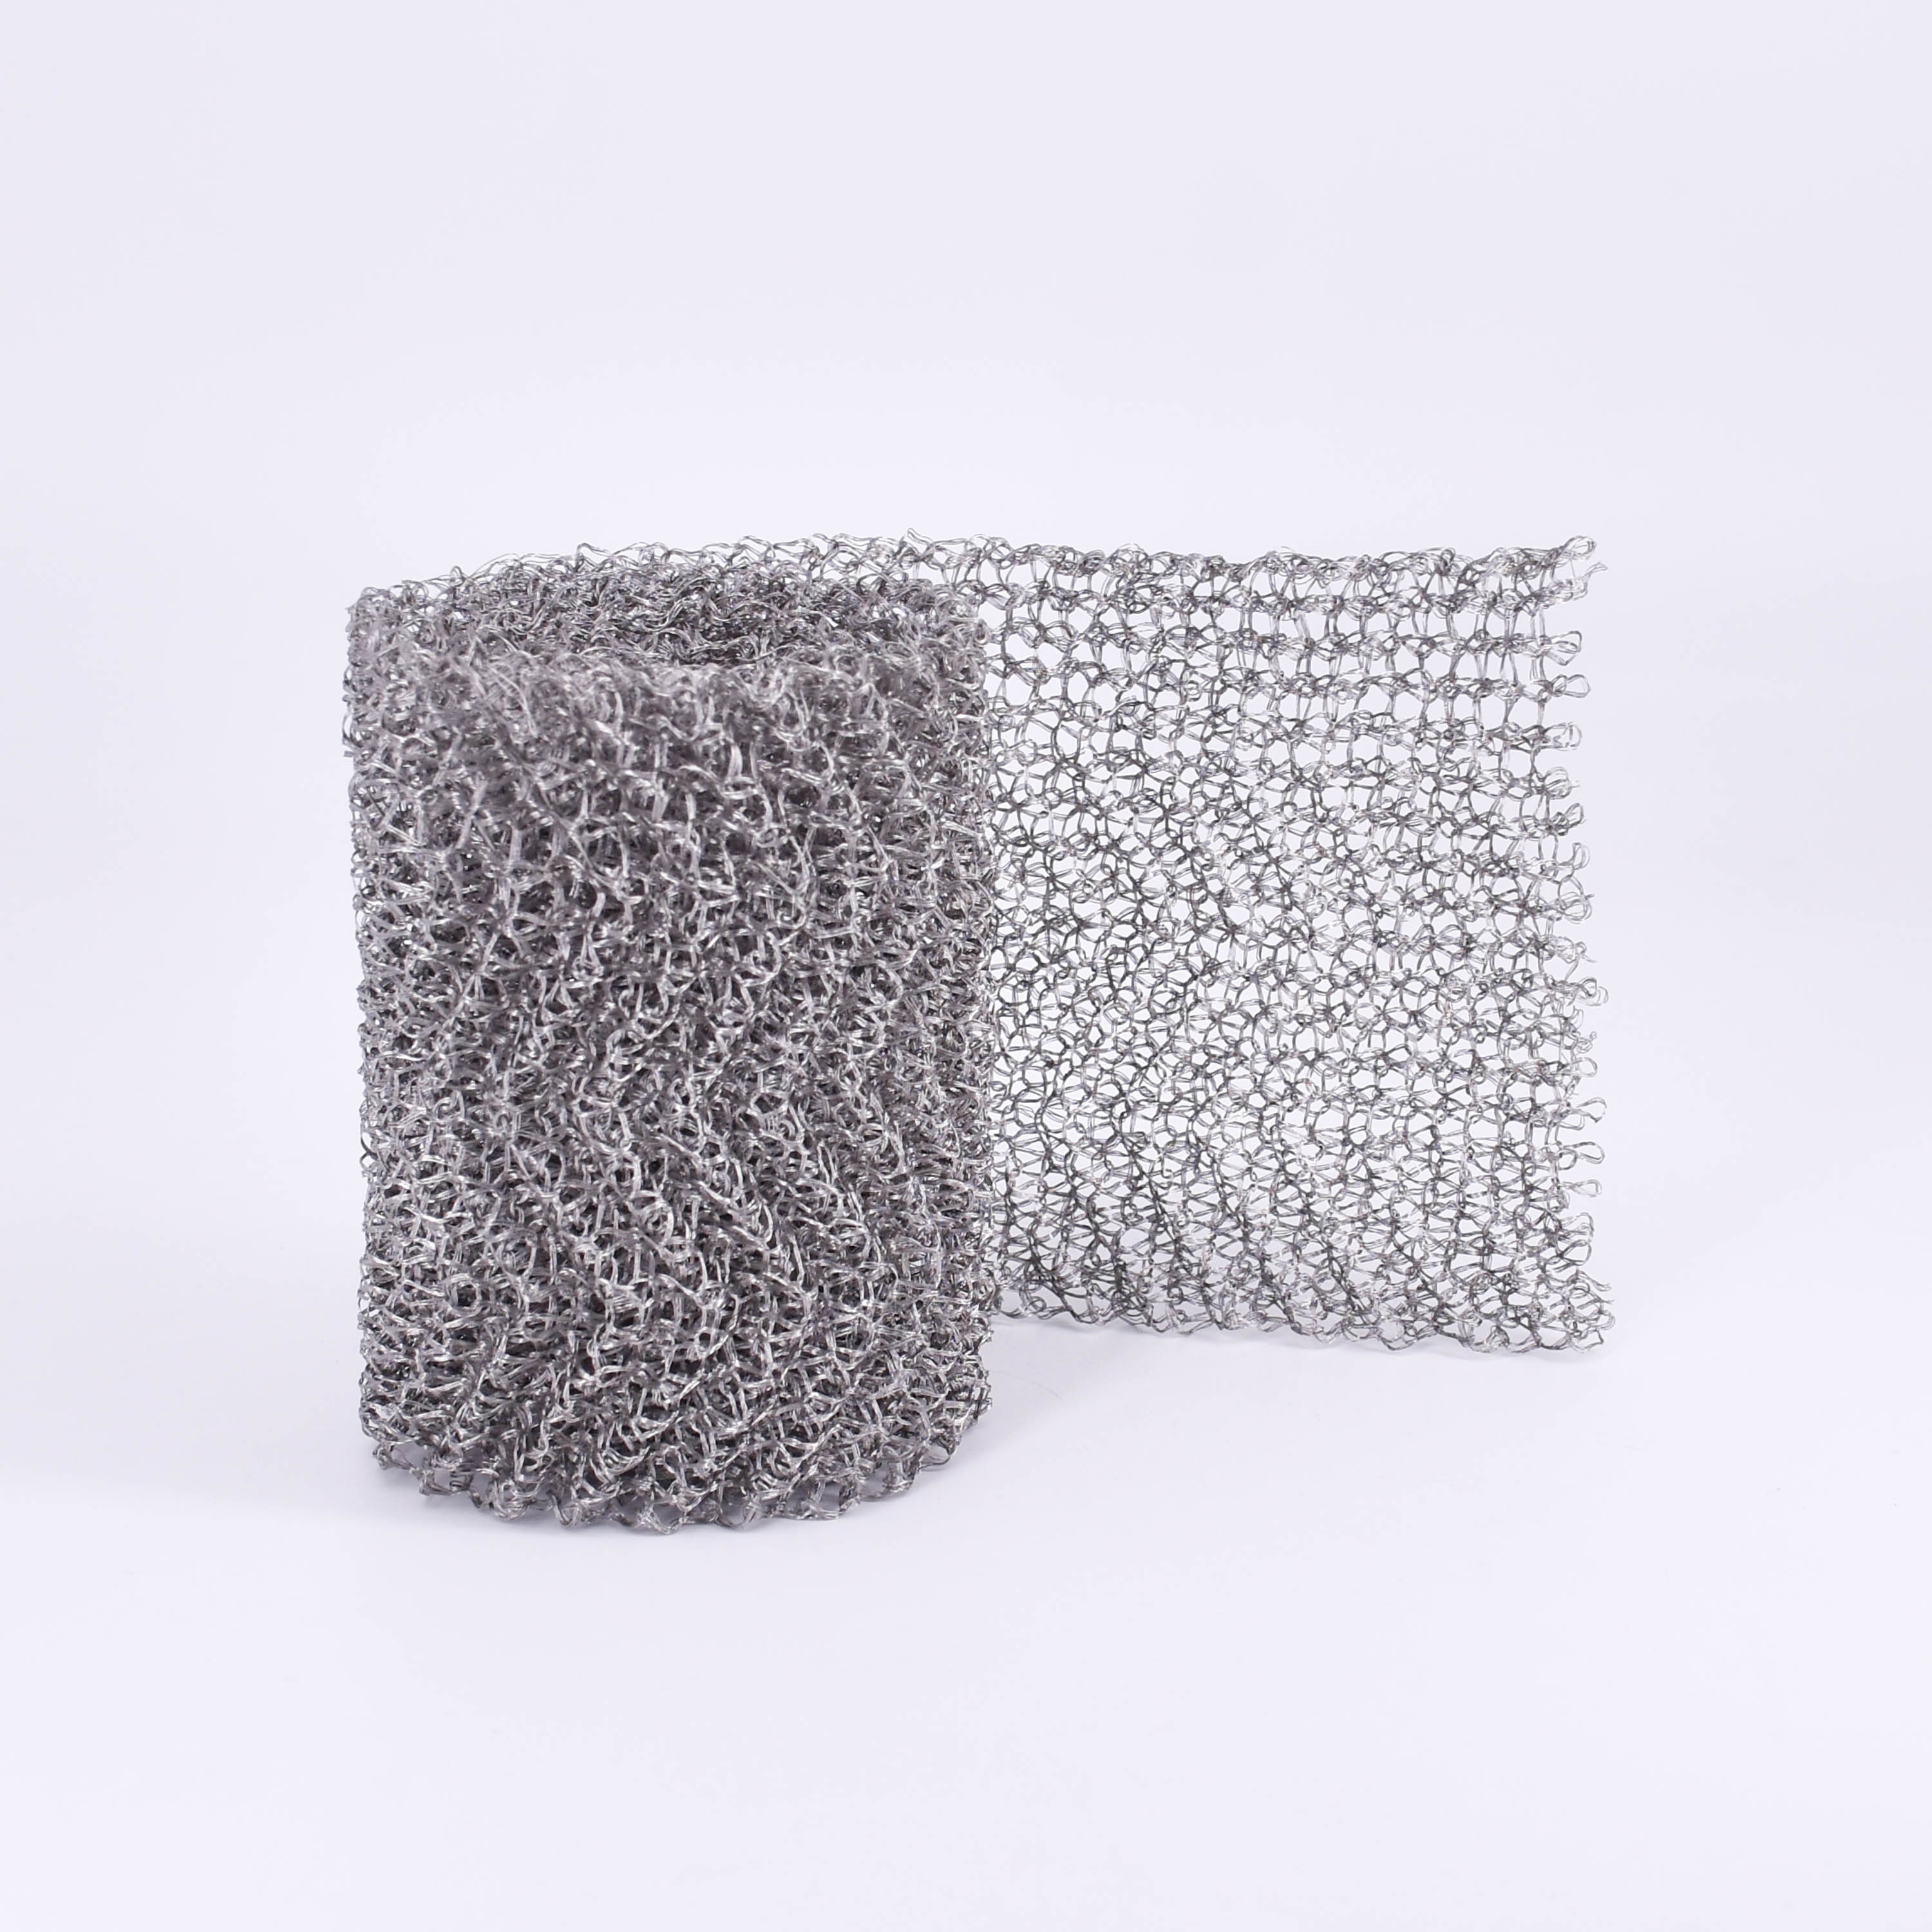 1-10 Meters 4 Wires SUS 304 Stainless Mesh Woven Filter Sanitary Food Grade For Distillation Moonshine Home Brew Beer 100mm1-10 Meters 4 Wires SUS 304 Stainless Mesh Woven Filter Sanitary Food Grade For Distillation Moonshine Home Brew Beer 100mm